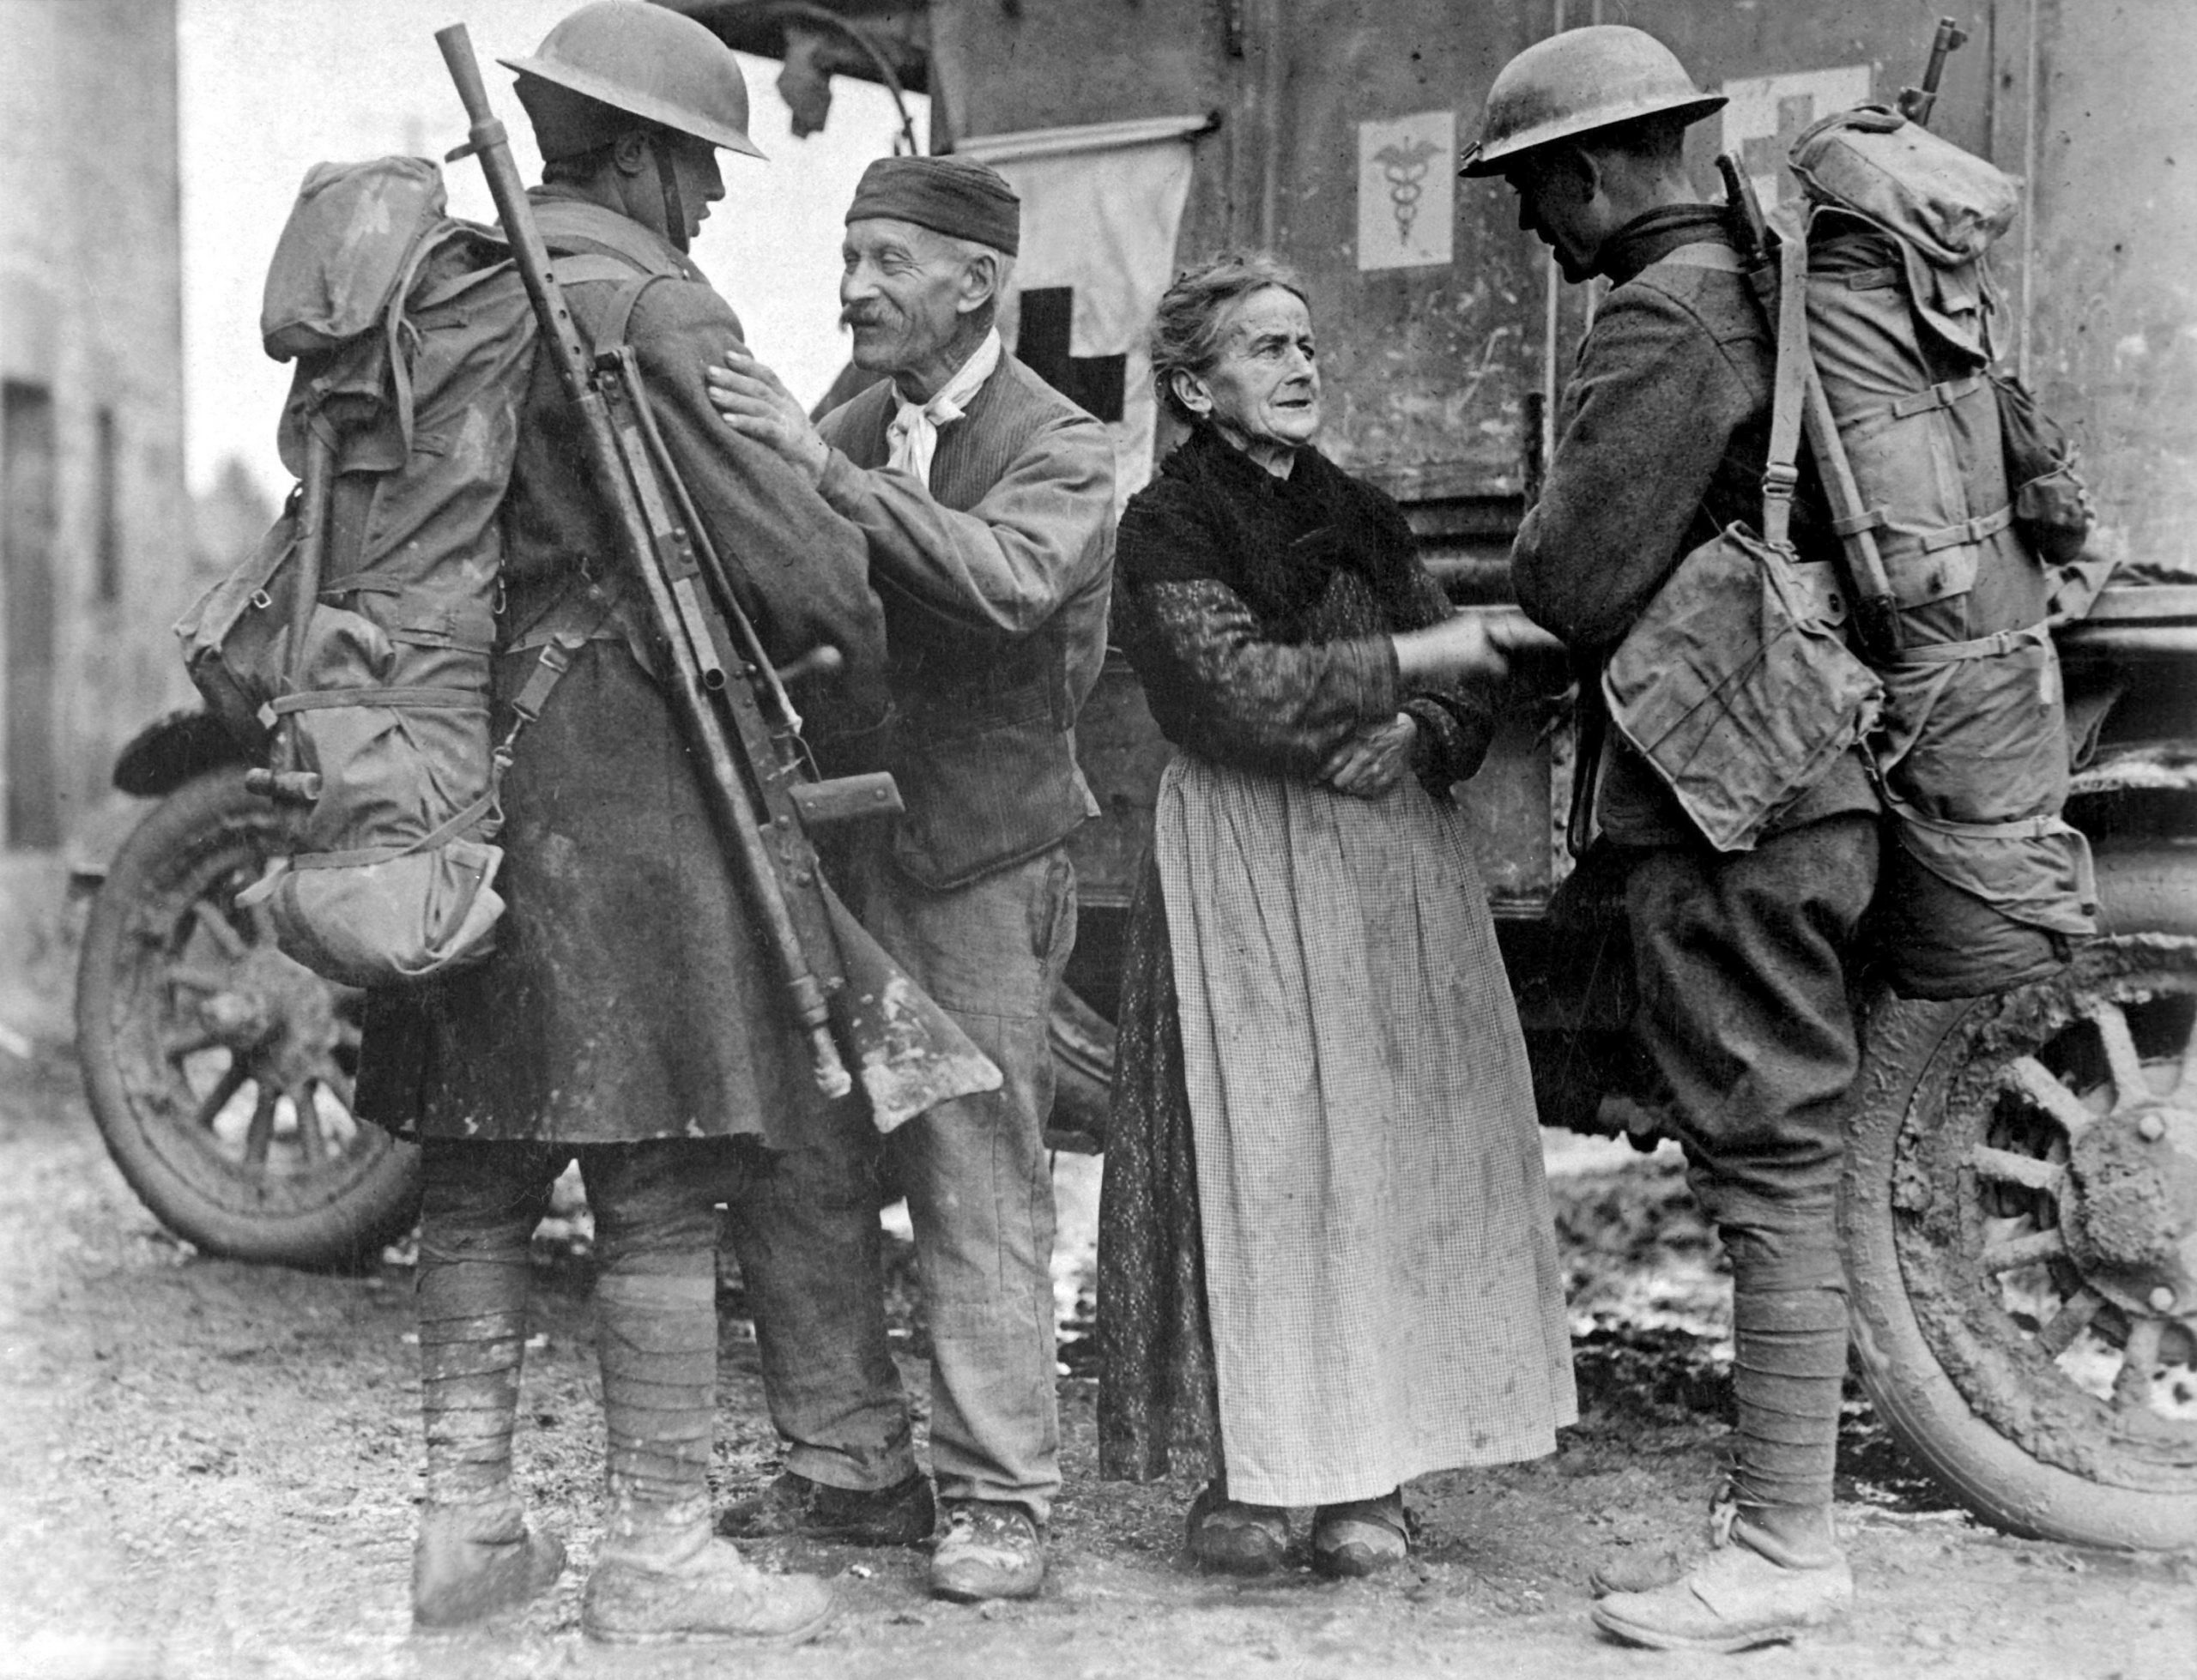 An old French couple, M. and Mme. Baloux of Brieulles-sur-Bar, France, under German occupation for four years, greeting soldiers of the 308th and 166th Infantries upon their arrival during the American advance. Nov 6, 1918.  Lt Adrian C. Duff